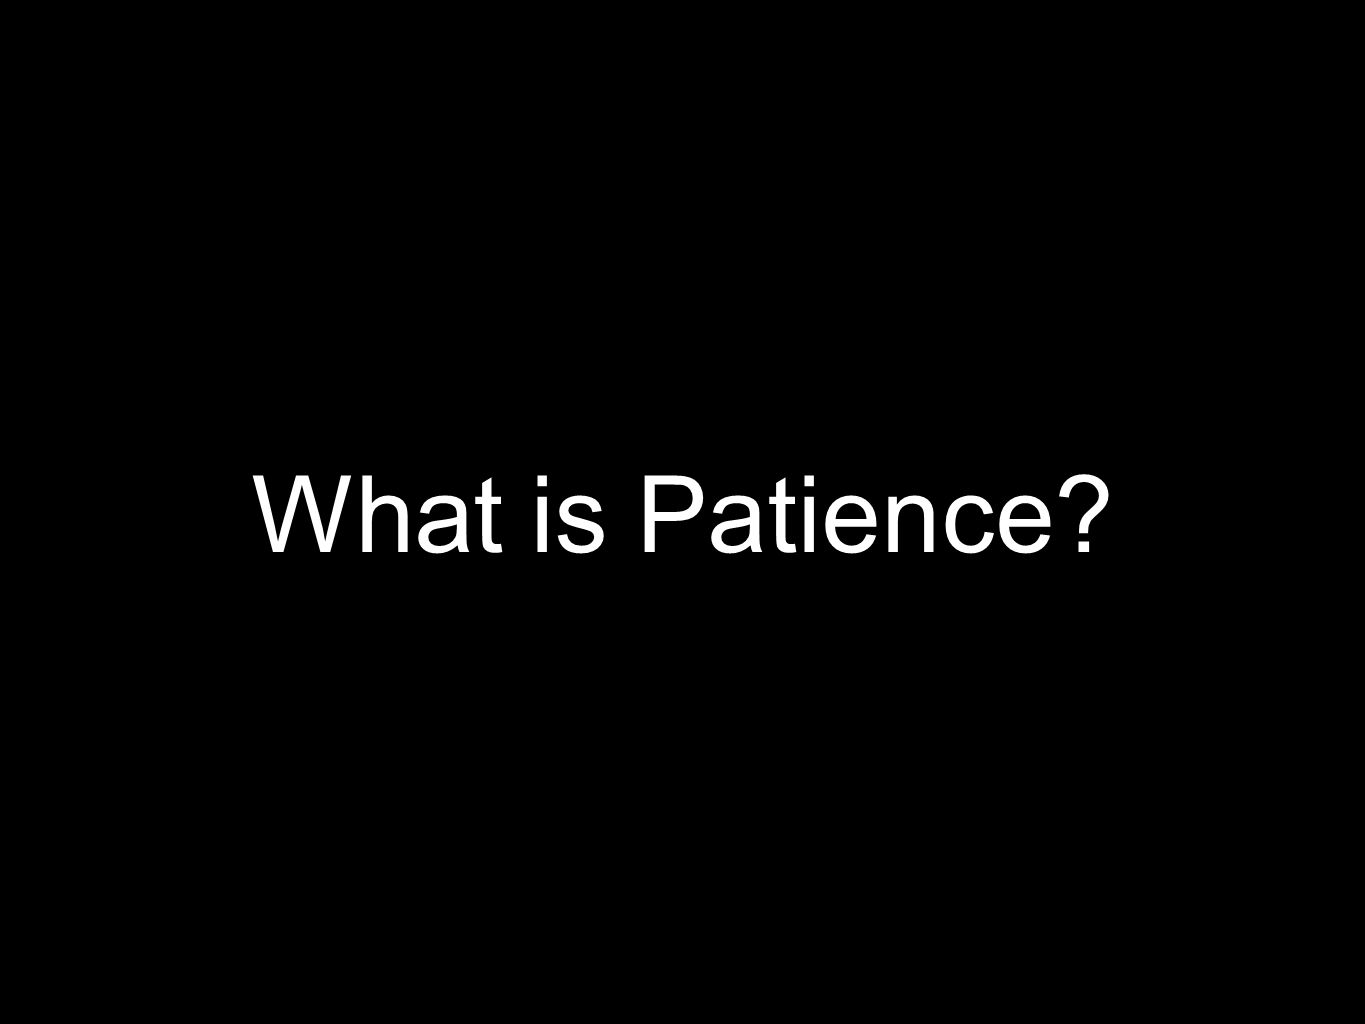 What is Patience